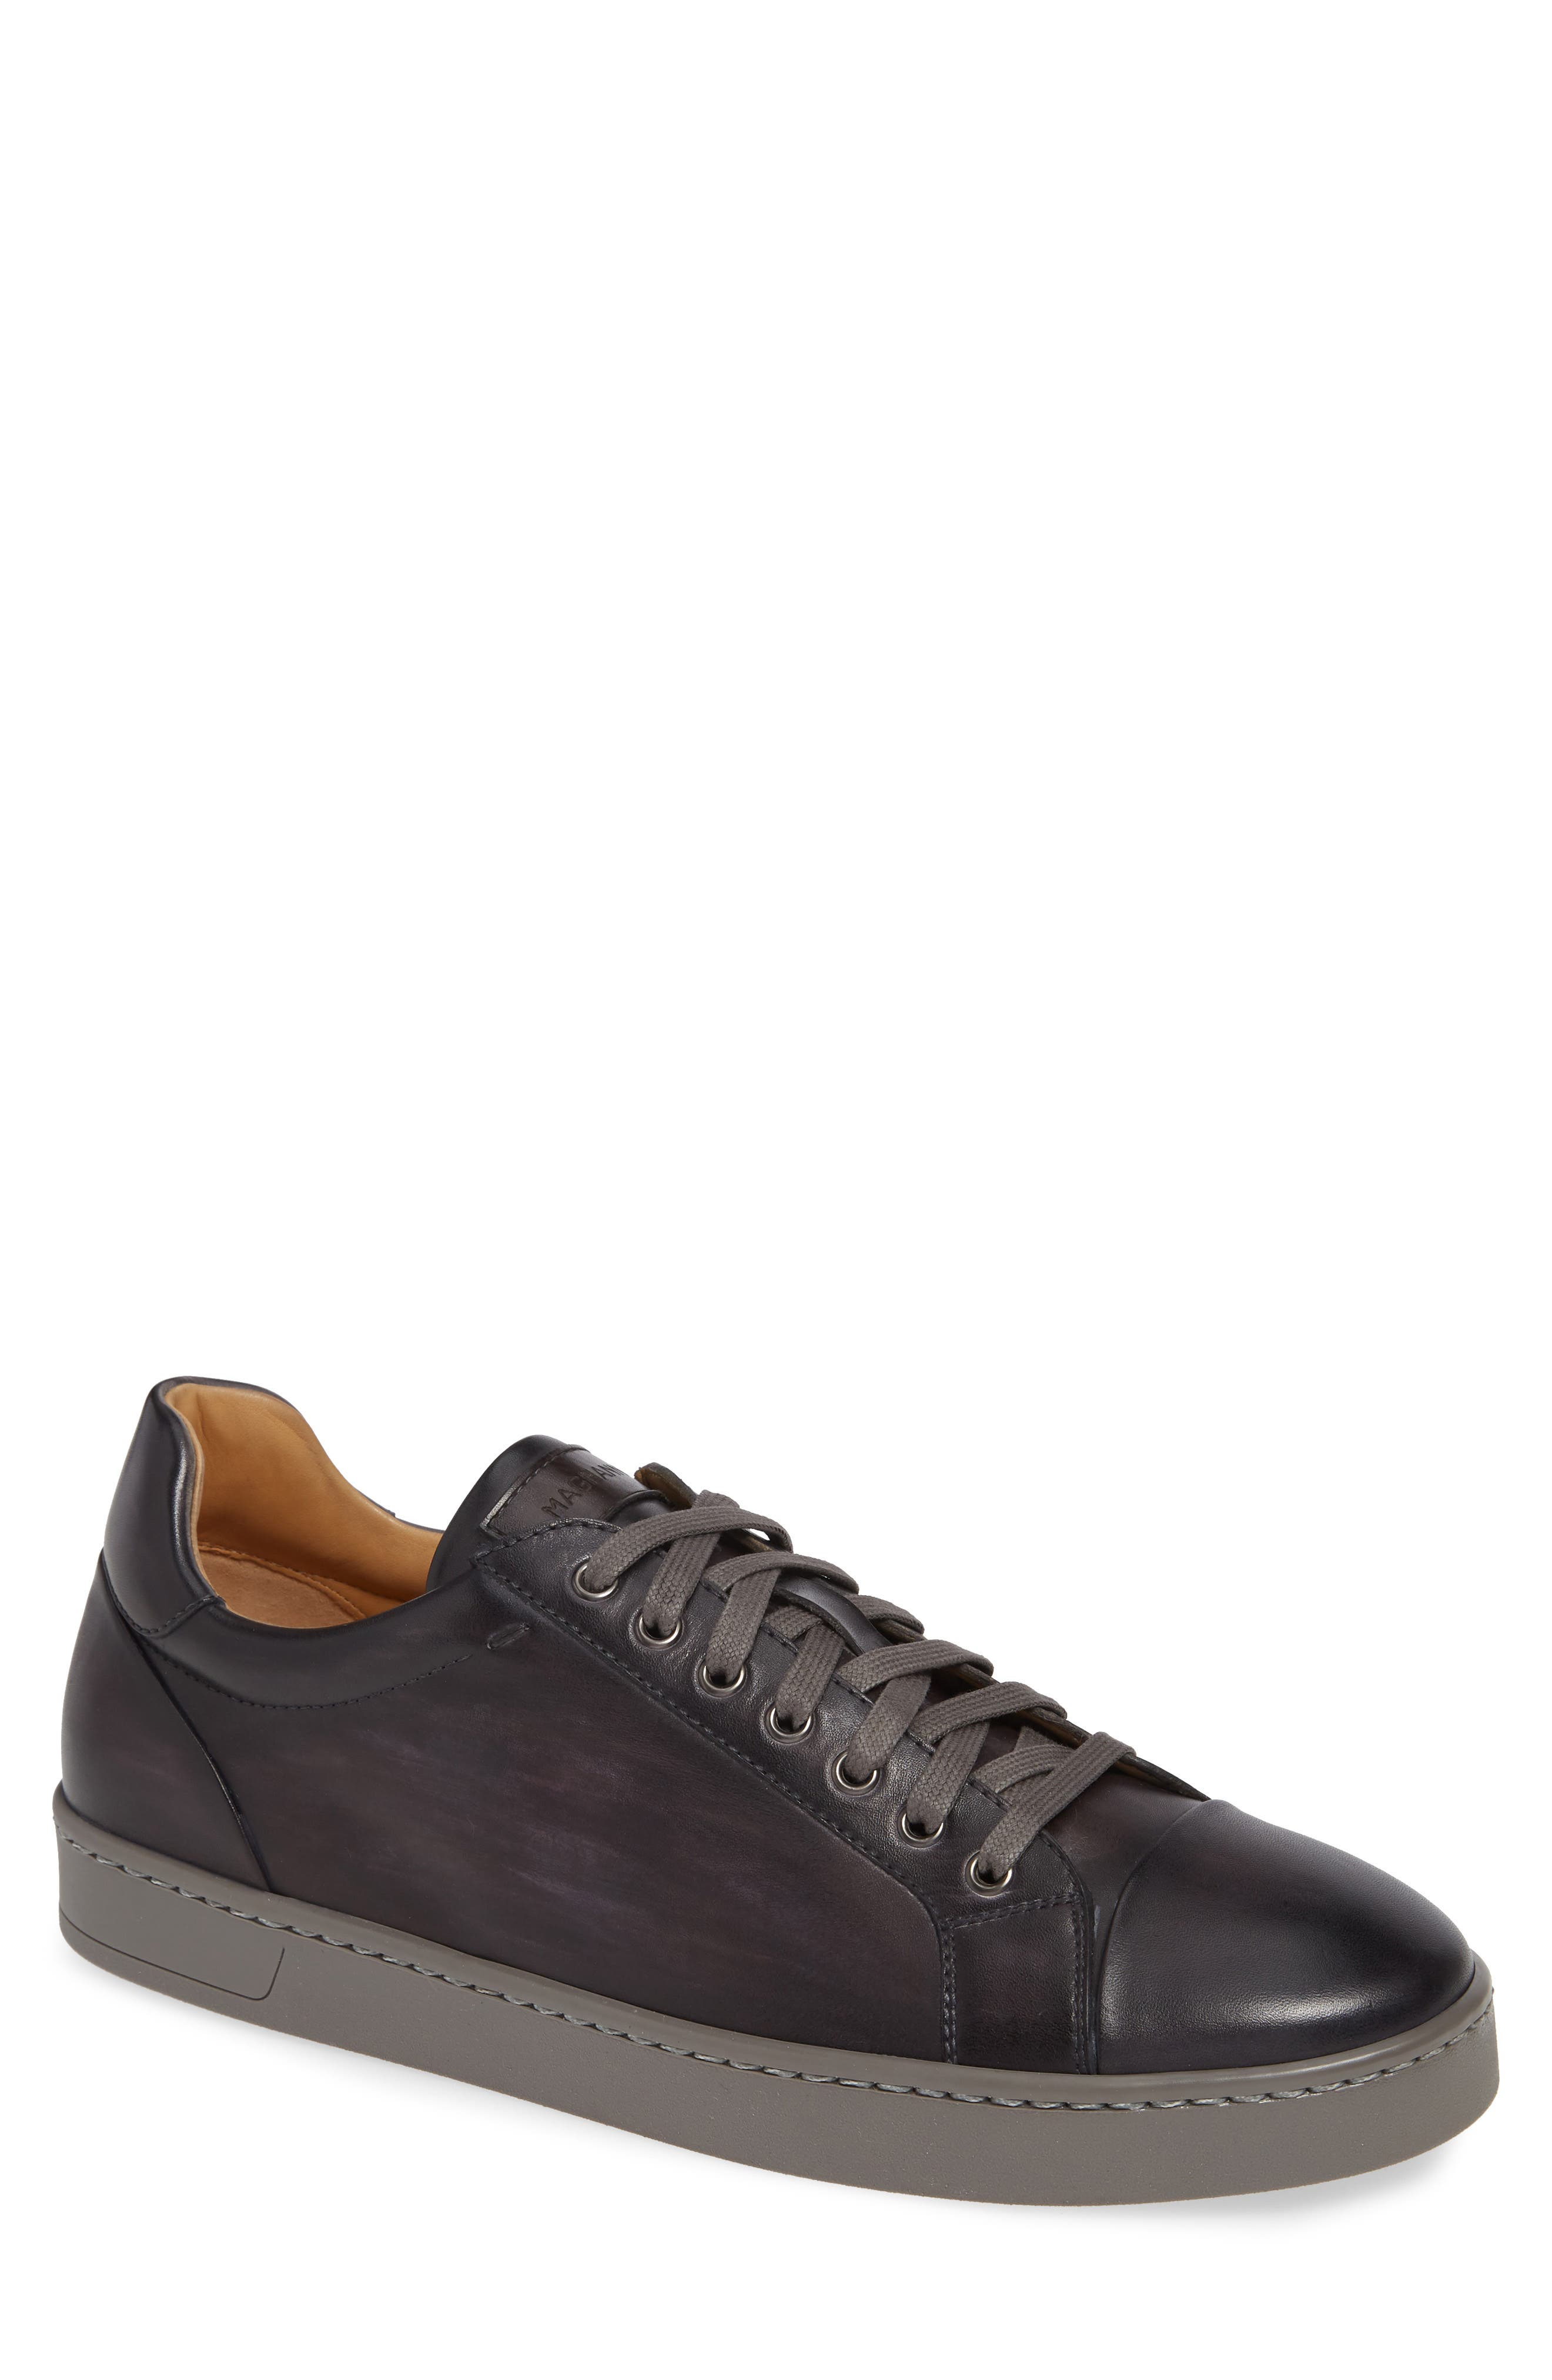 Caitin Sneaker,                         Main,                         color, GREY/ GREY LEATHER